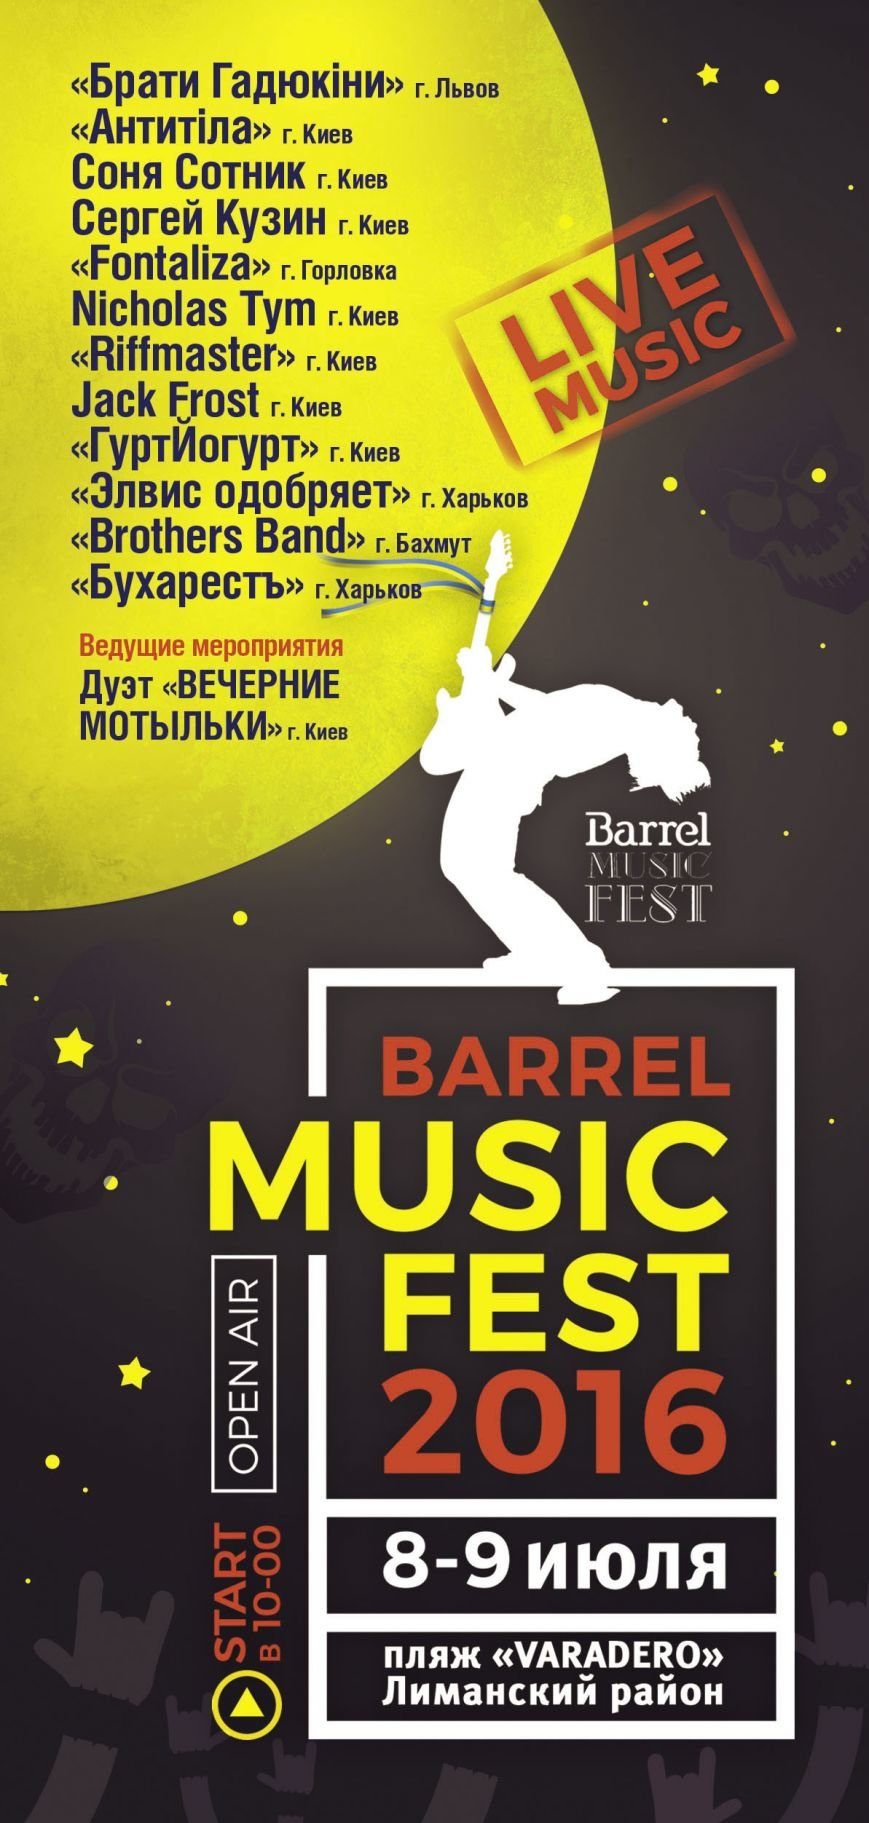 Barrel_Music_Fest_2016_флаер_1